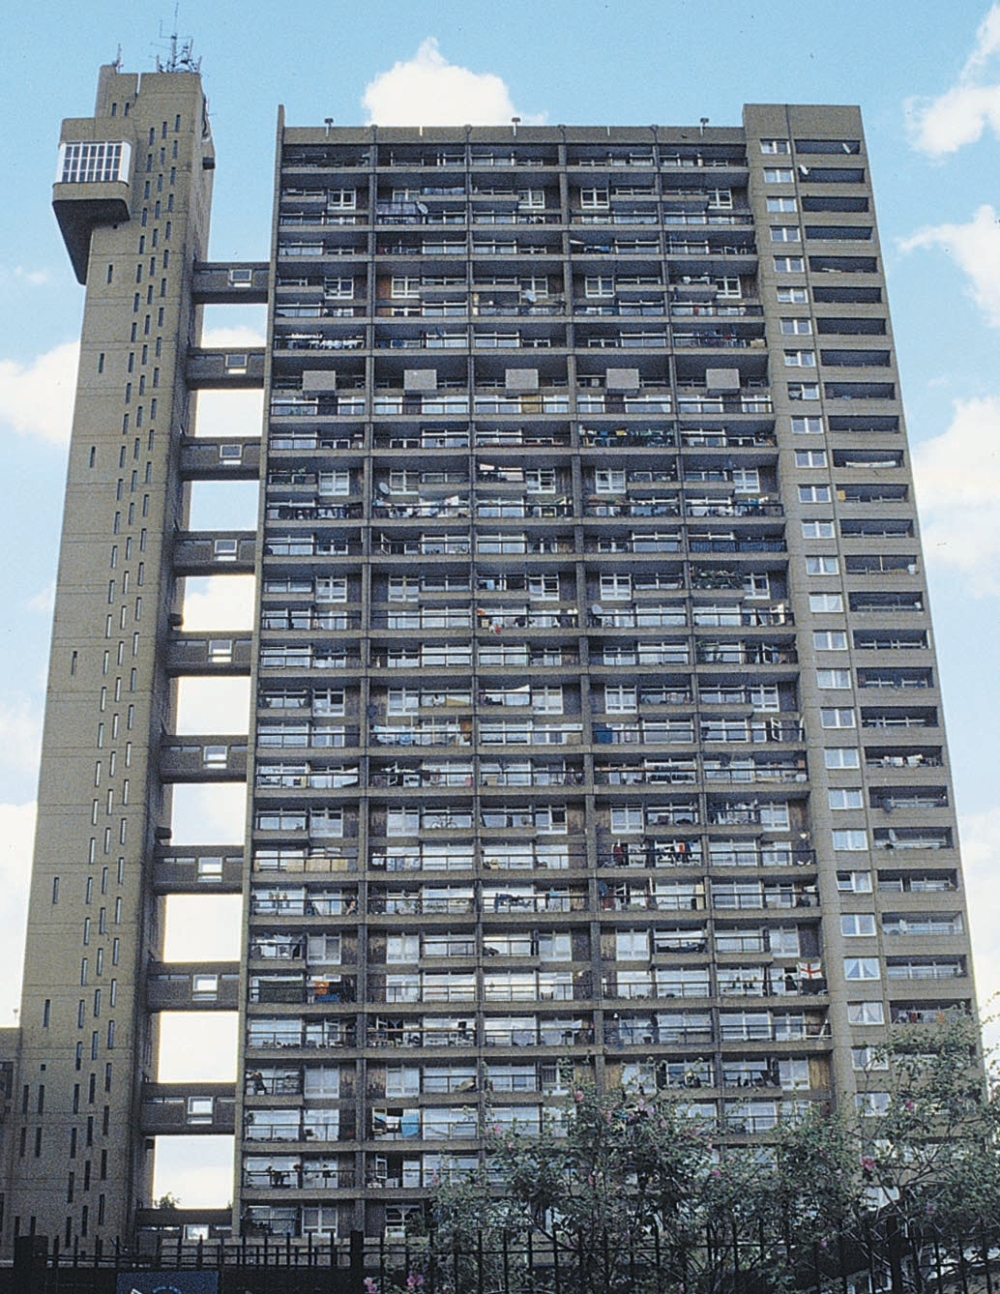 See: Trellick Tower